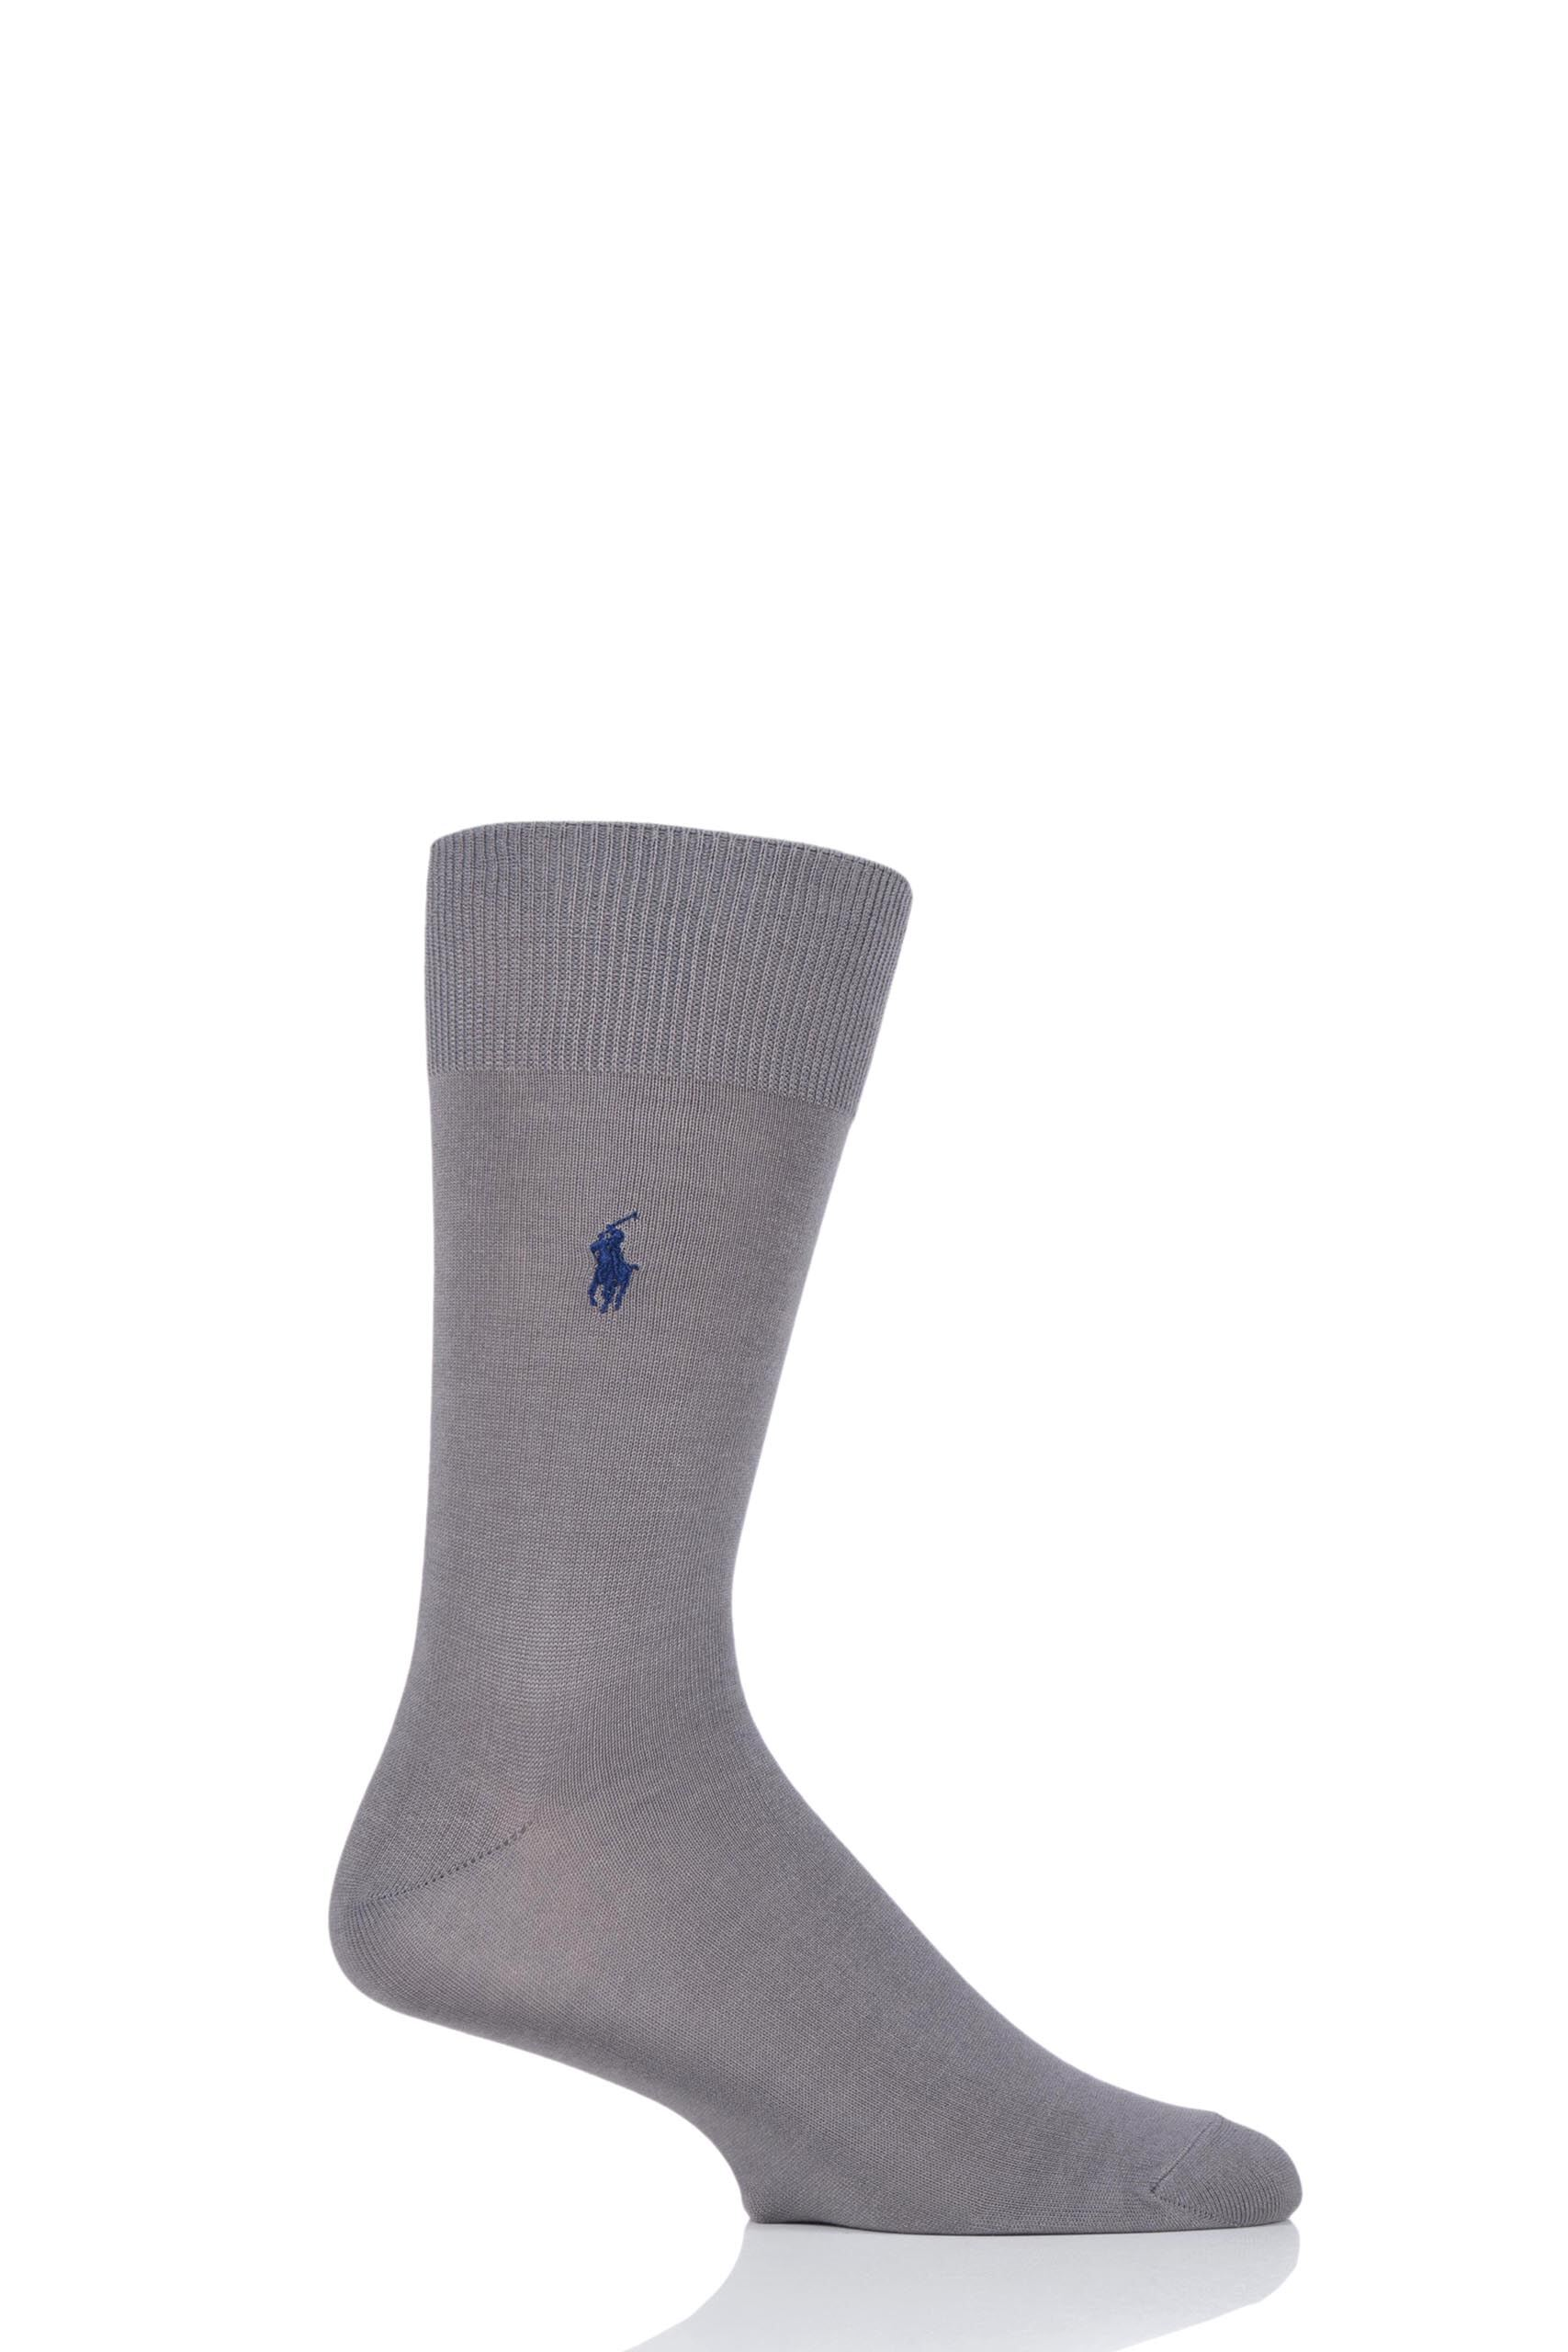 Image of 1 Pair Pewter Embroidered Crew Cotton Socks Men's 9-12 Mens - Ralph Lauren